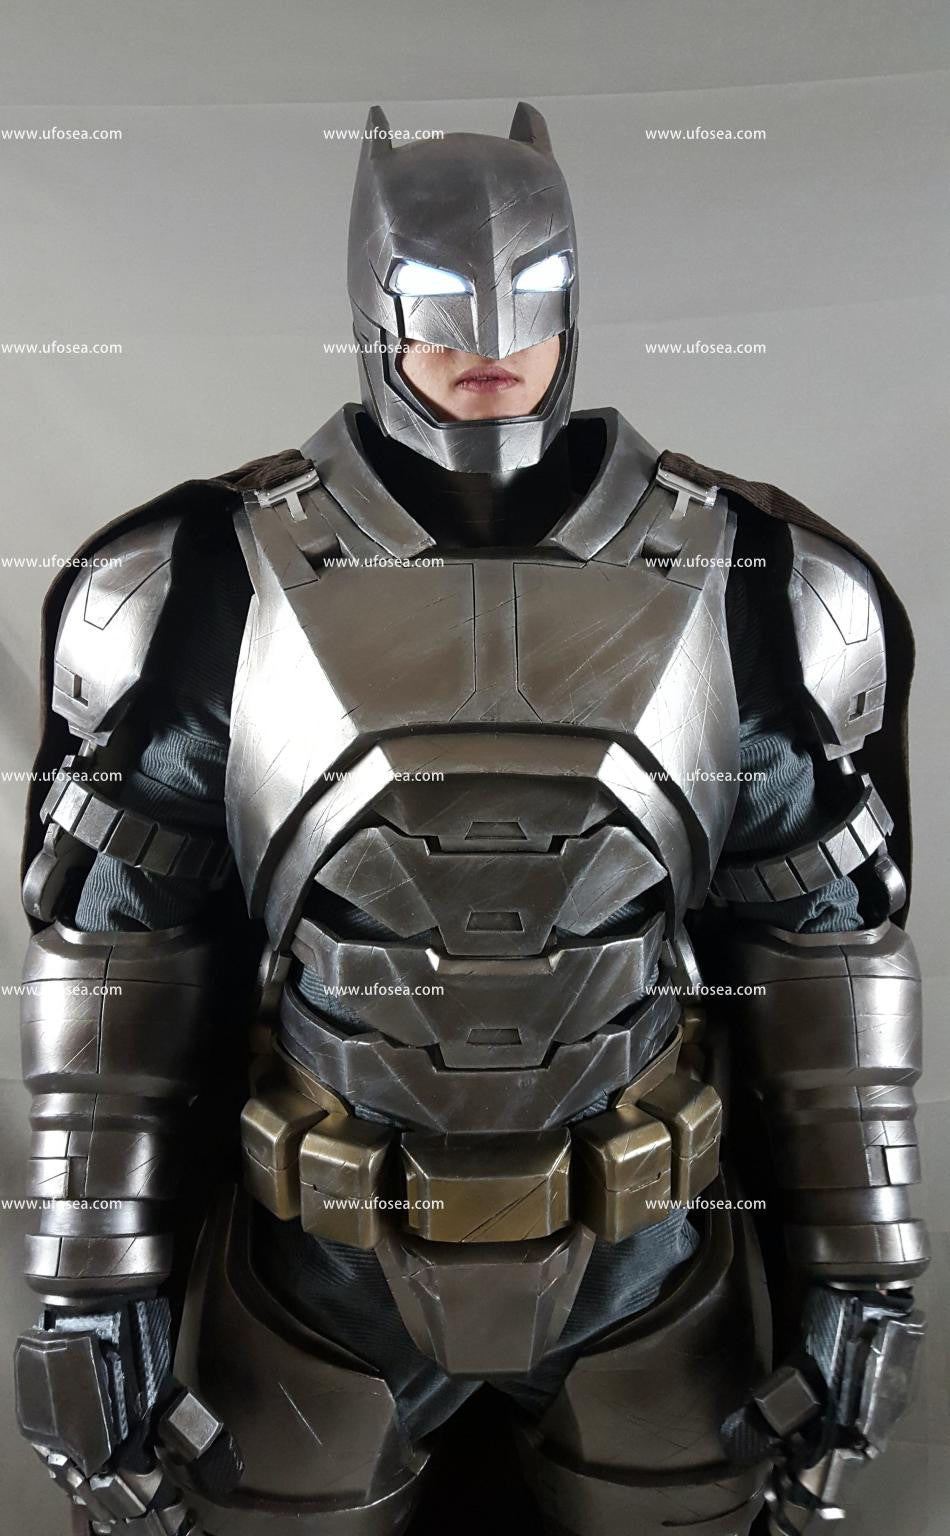 Batman Armor Reloaded Armor